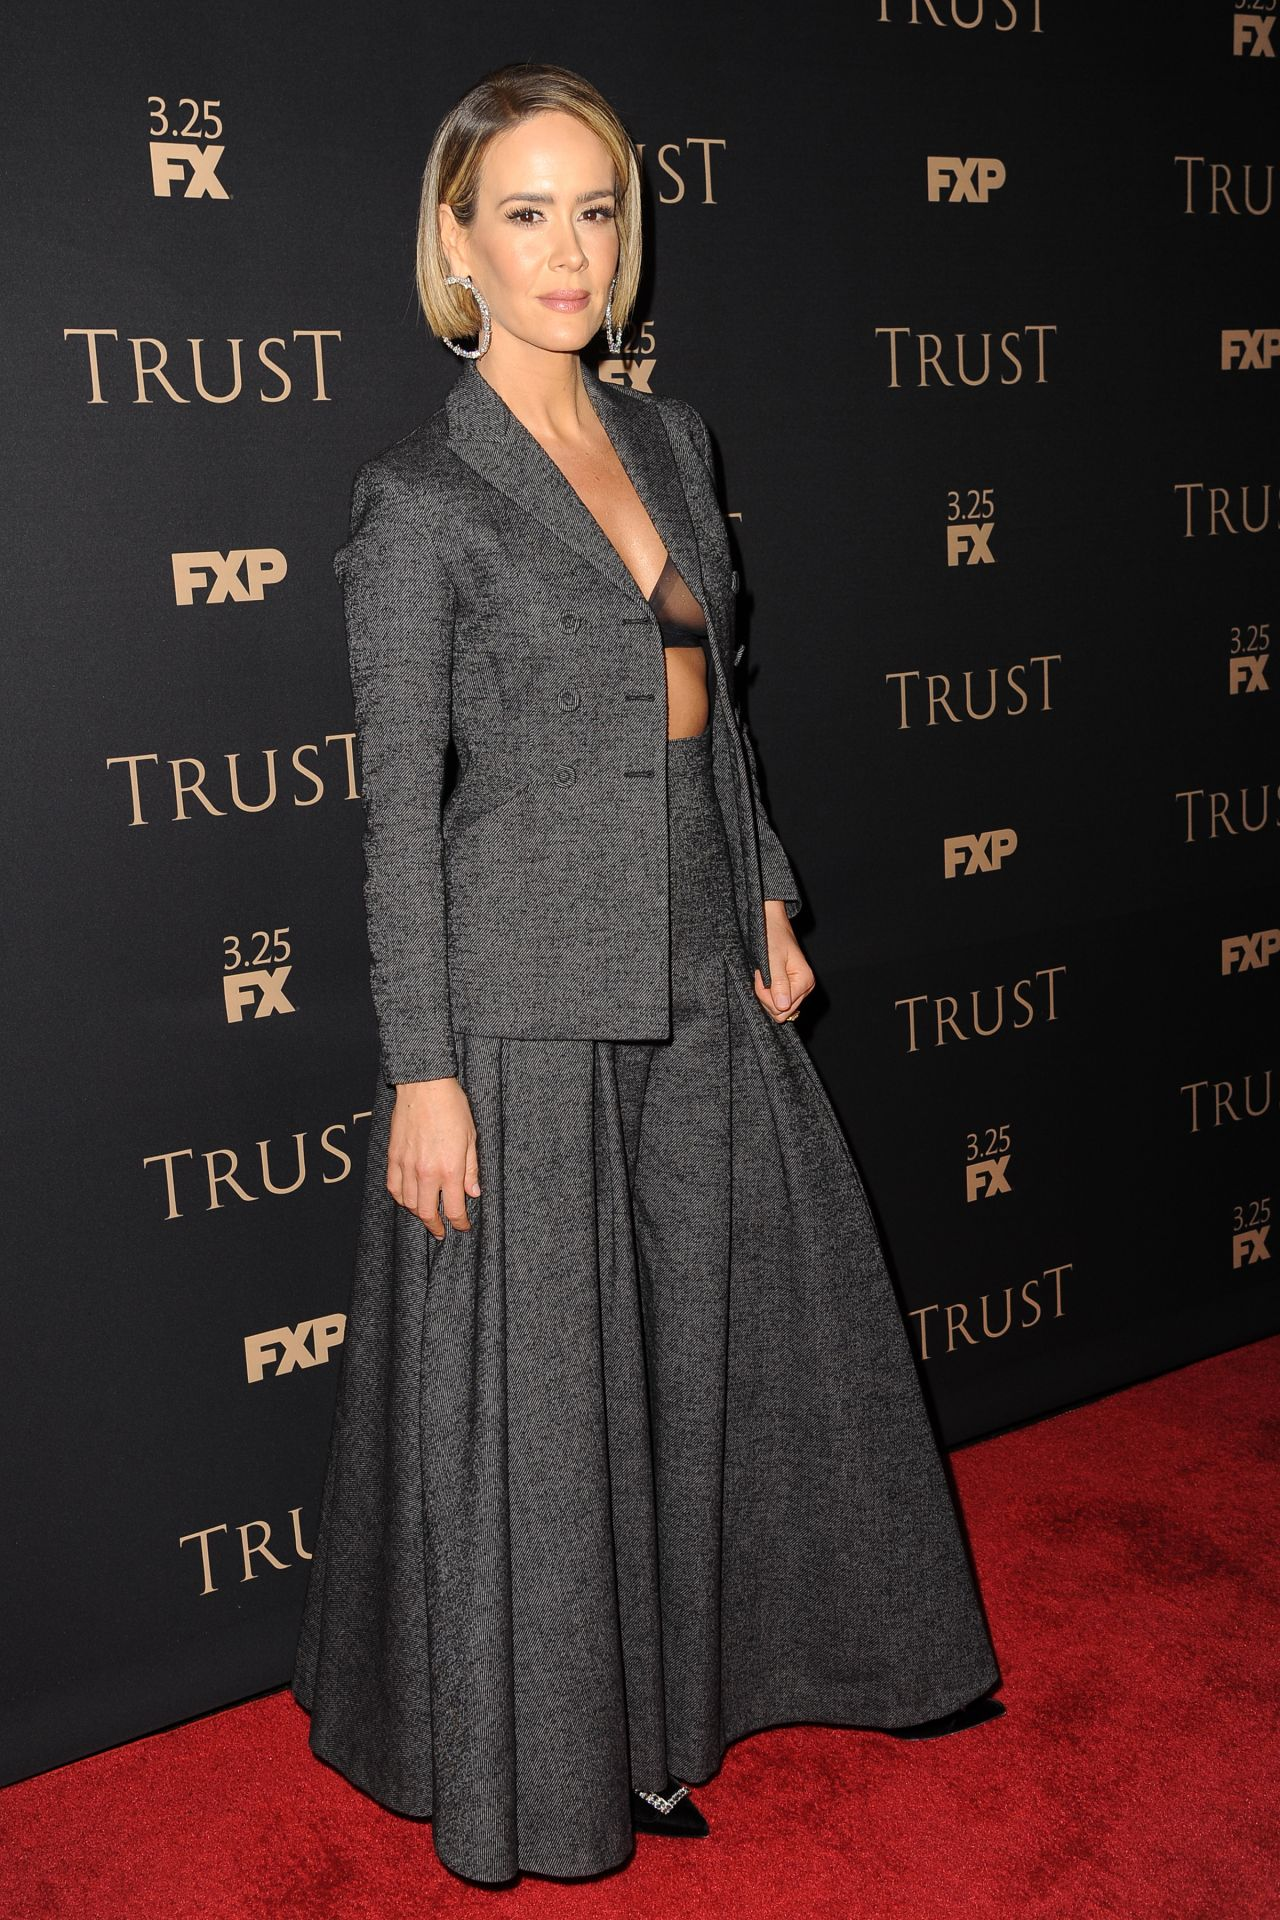 Sarah Paulson Fx All Star Party In New York 03 15 2018